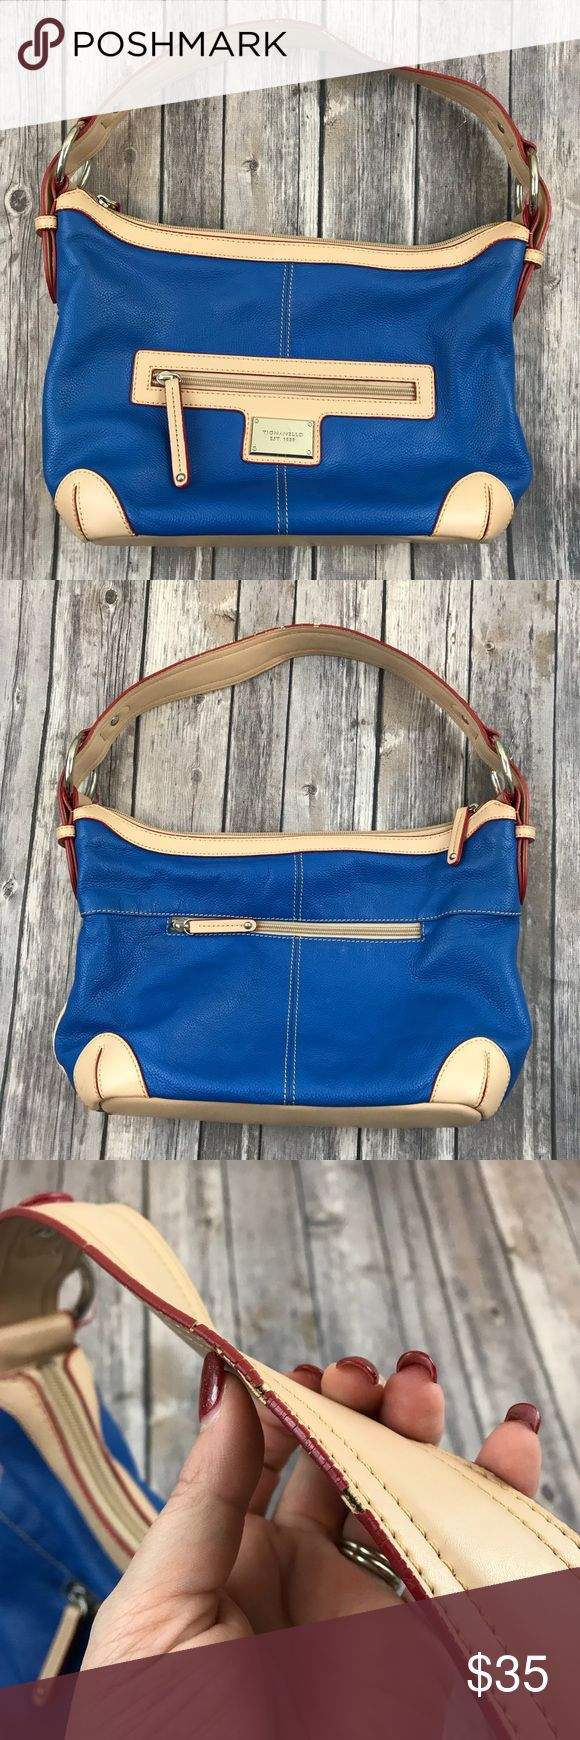 Tignanello Handbag Purse Buttery Soft Blue Leather Tignanello Handbag Purse Buttery Soft Blue Leather  Great used condition! See photos for measurements. Always open to reasonable offers! Tignanello Bags Shoulder Bags